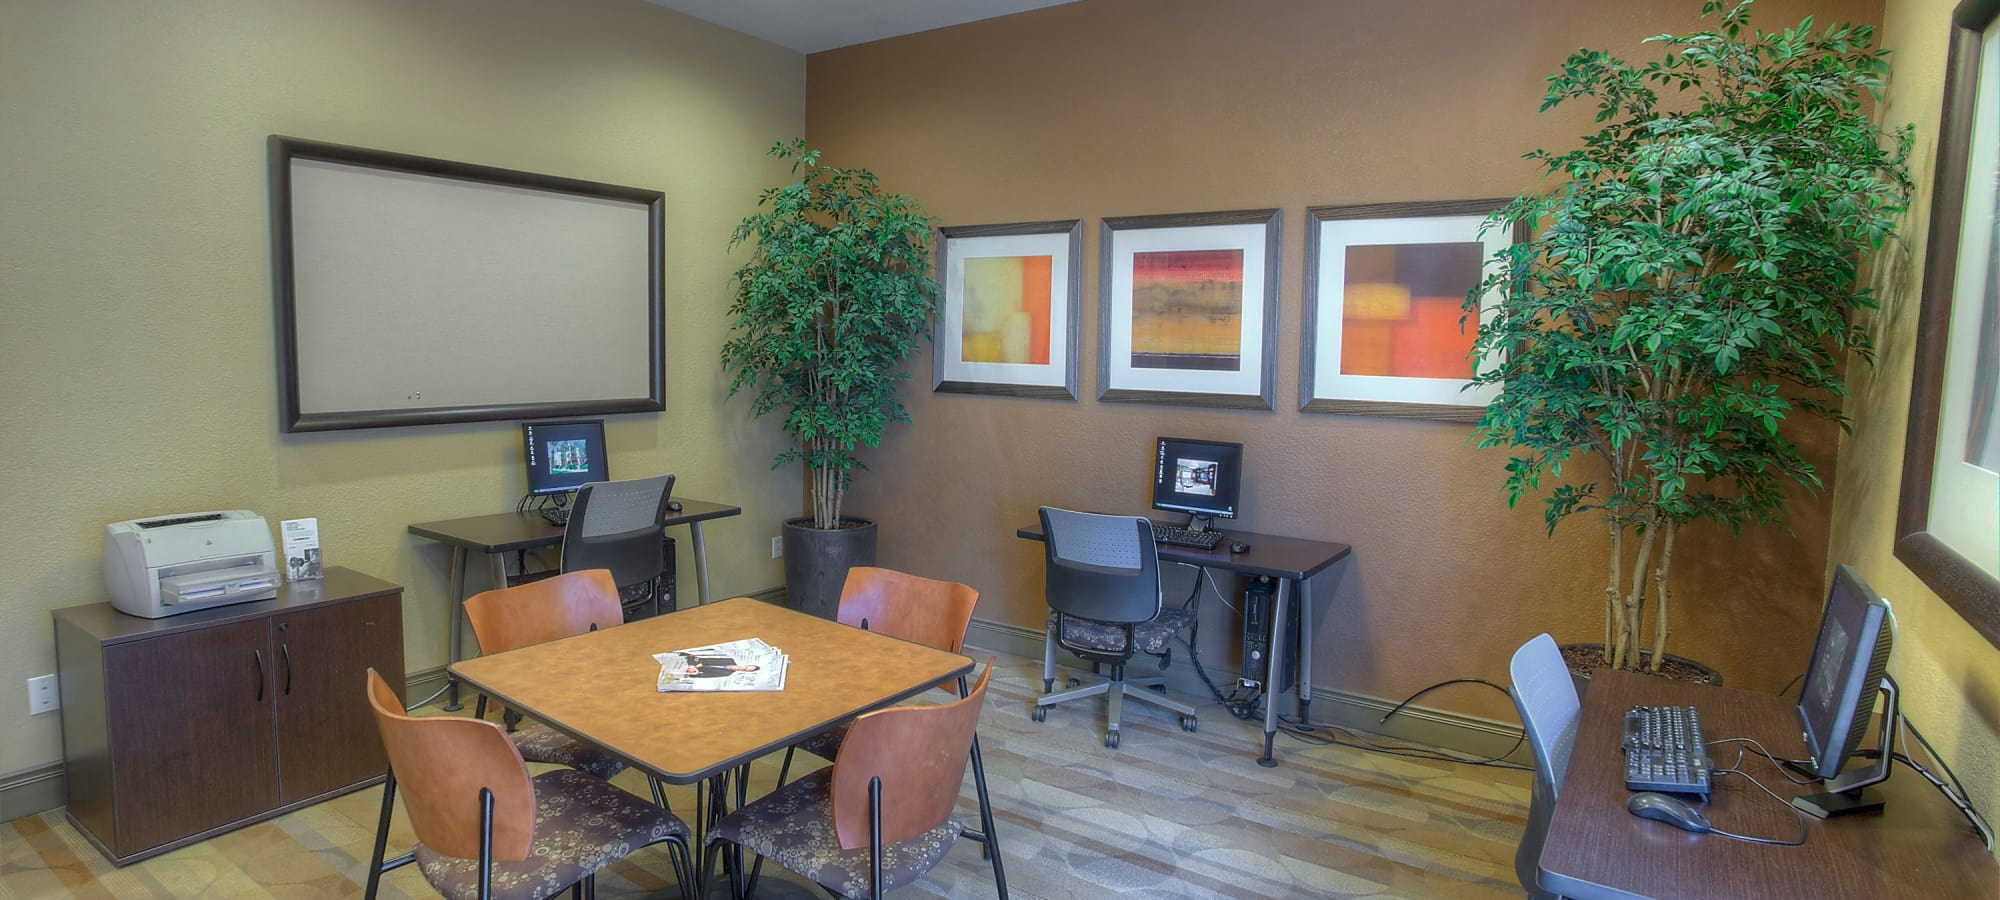 Community business center at The Regents at Scottsdale in Scottsdale, Arizona